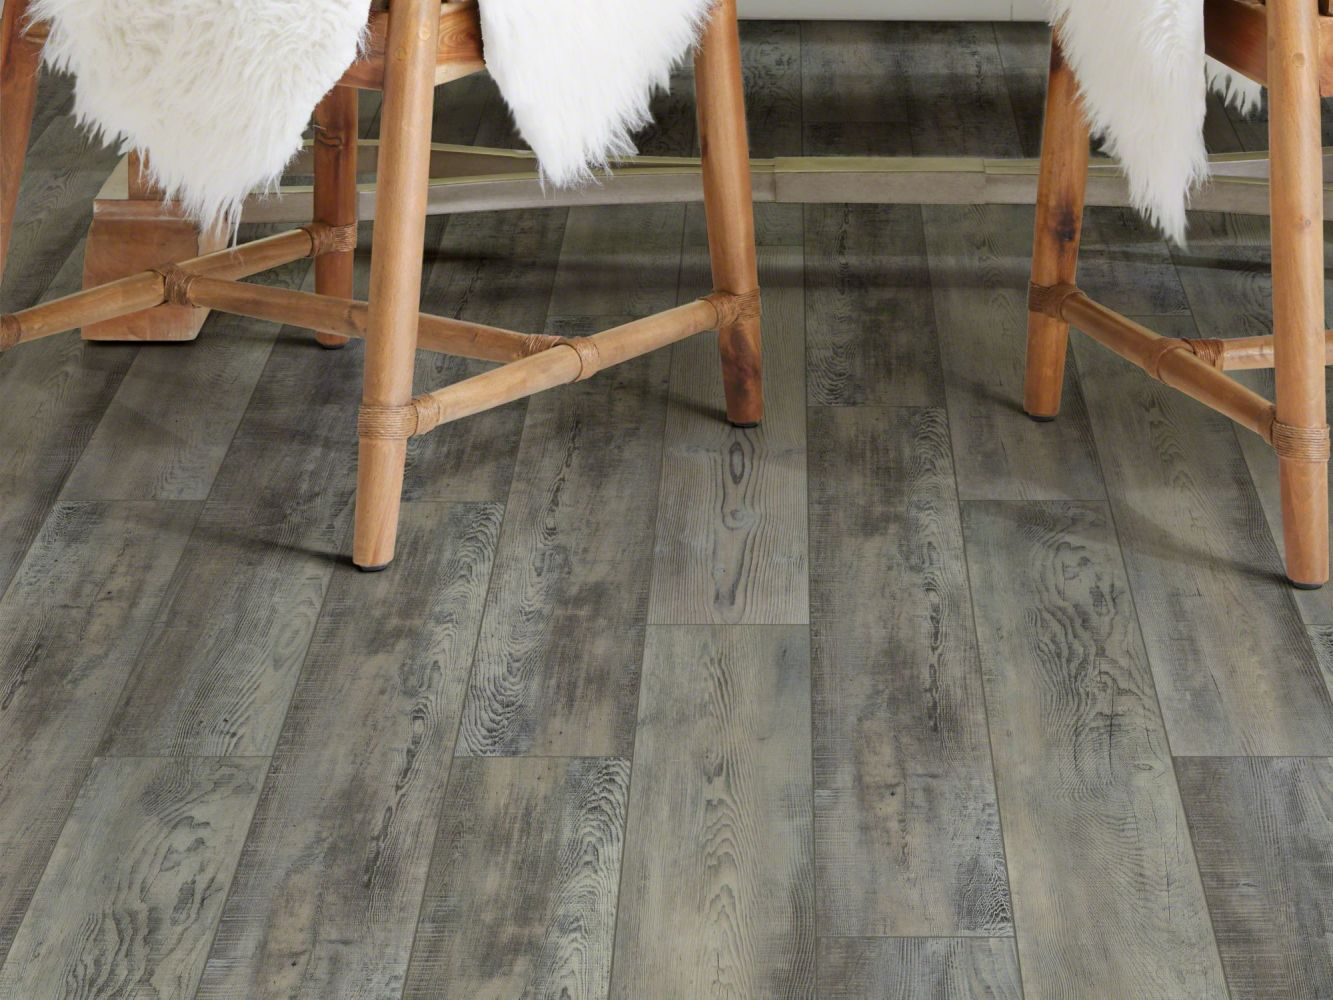 Shaw Floors Vinyl Residential Mojave HD Plus Calcare 00598_0461V